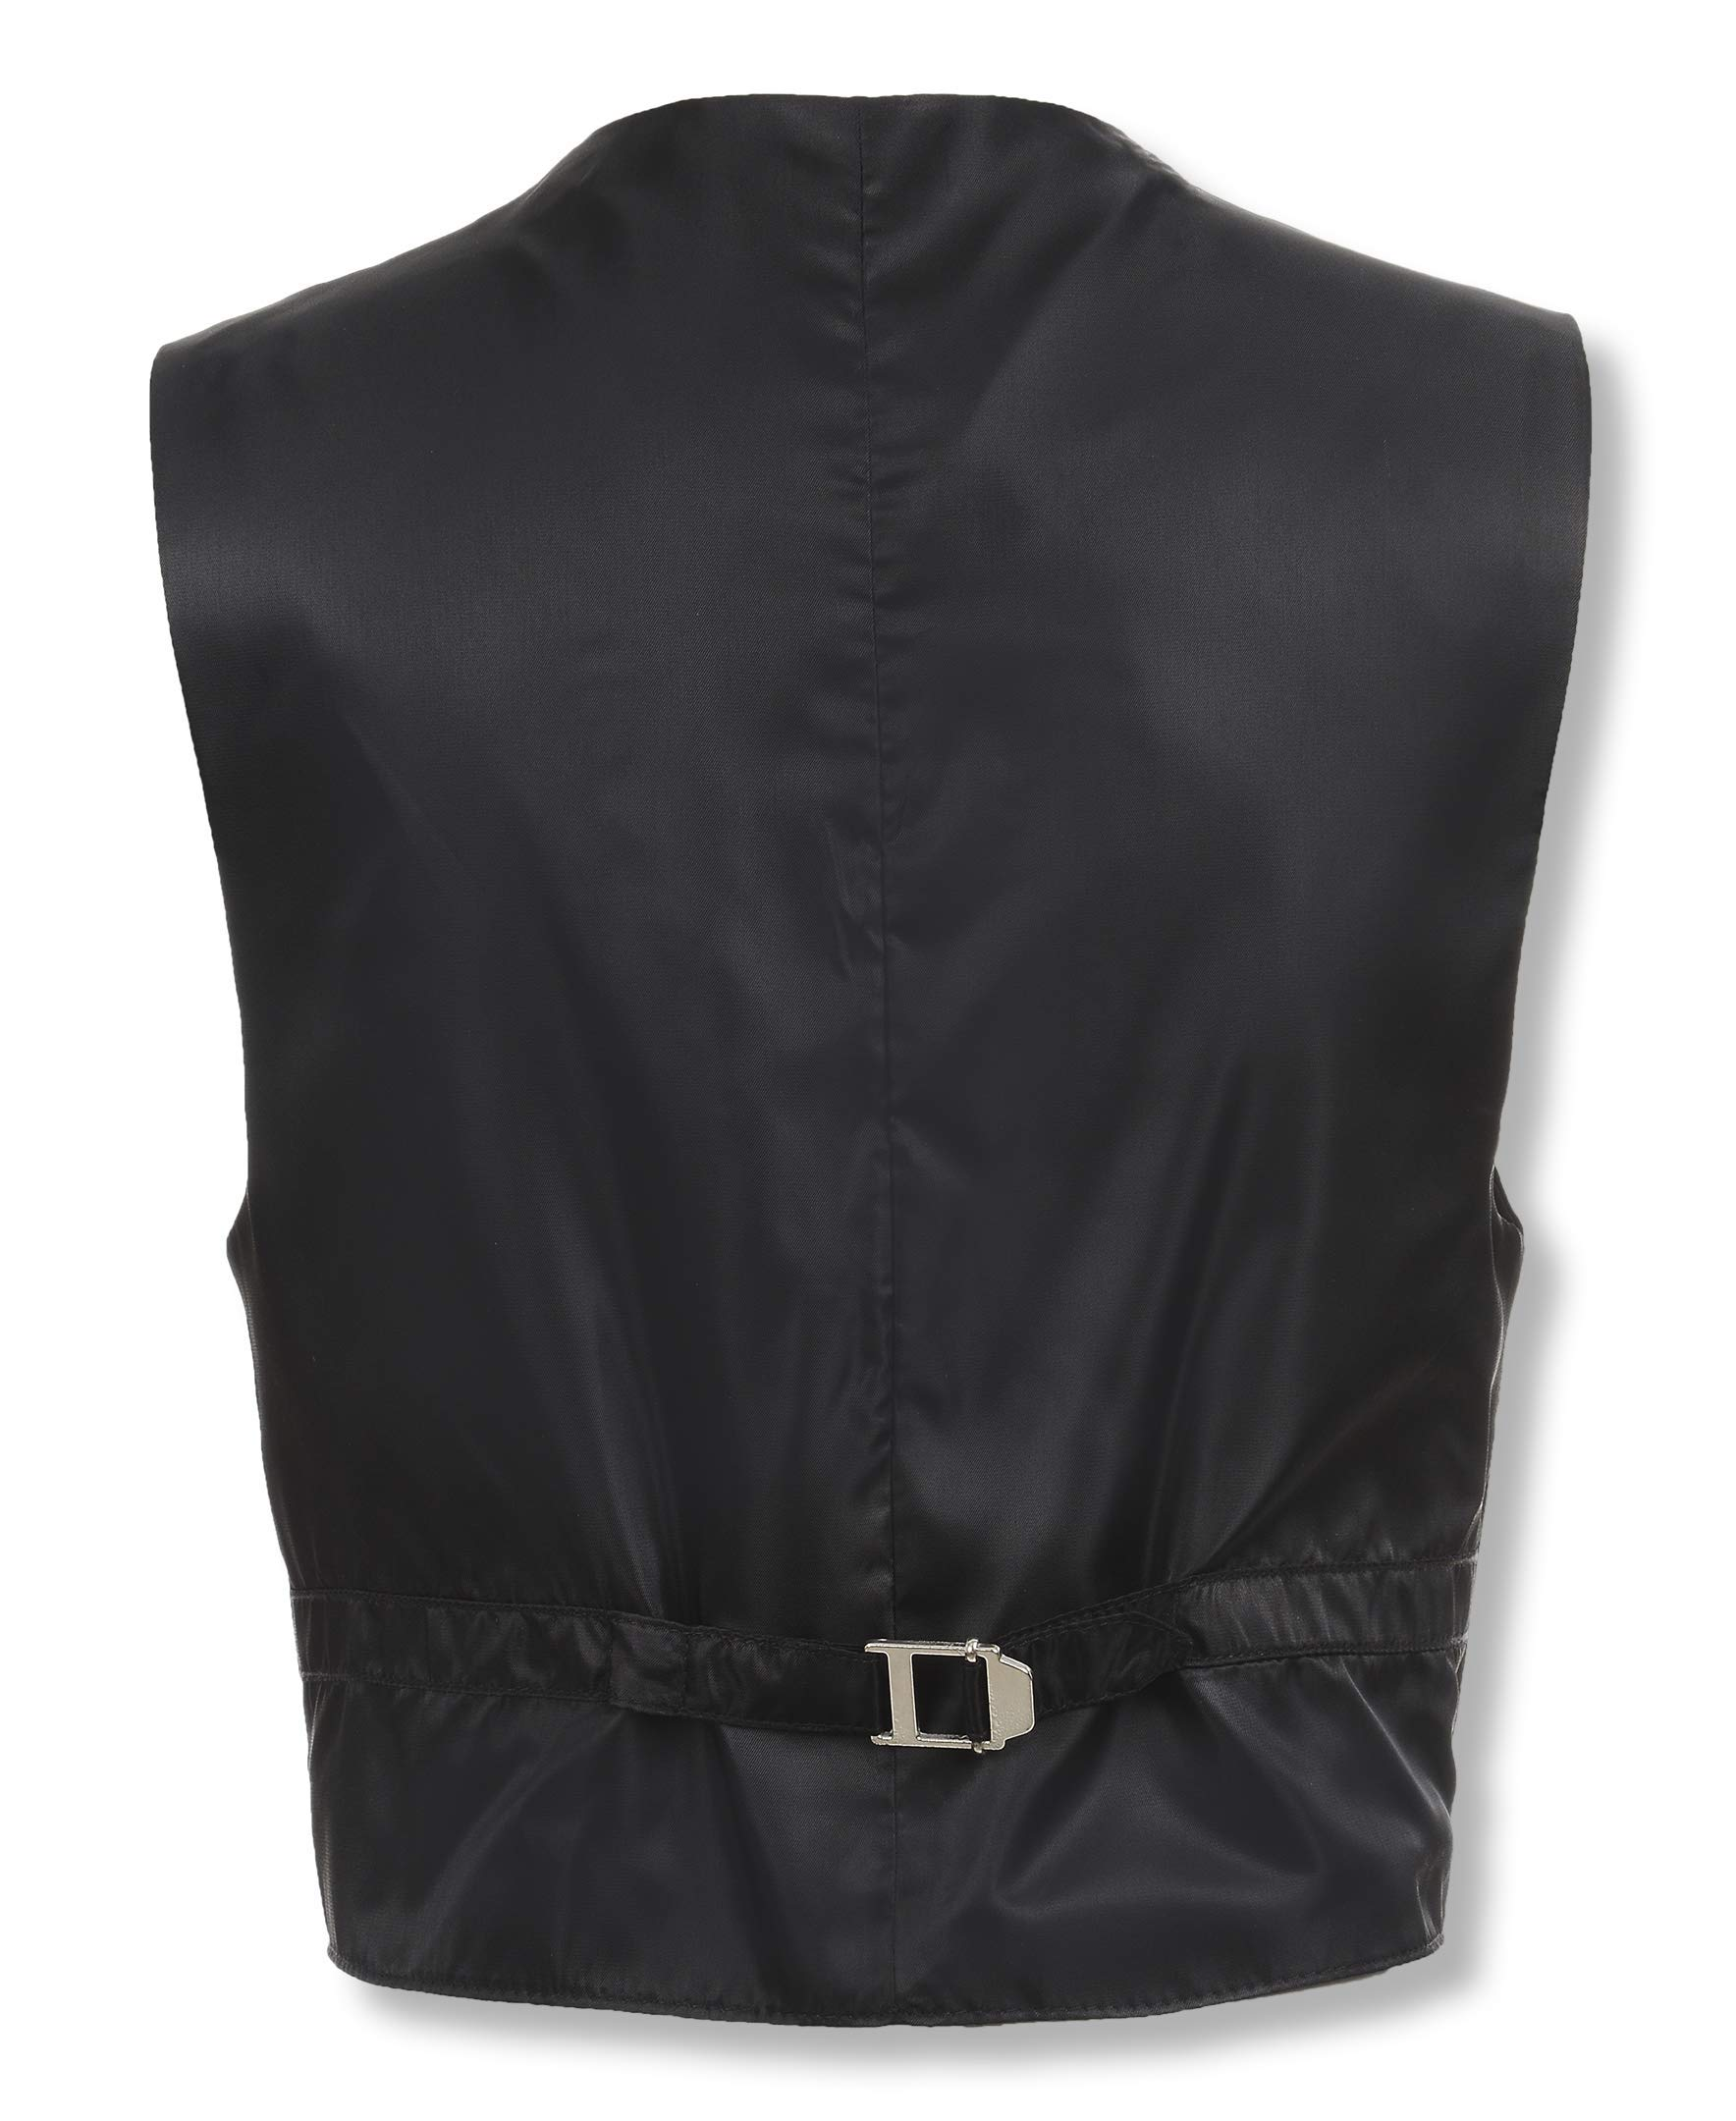 Calvin Klein Dress Up Big Boys' Bi-Stretch Vest, Black, Small by Calvin Klein (Image #3)